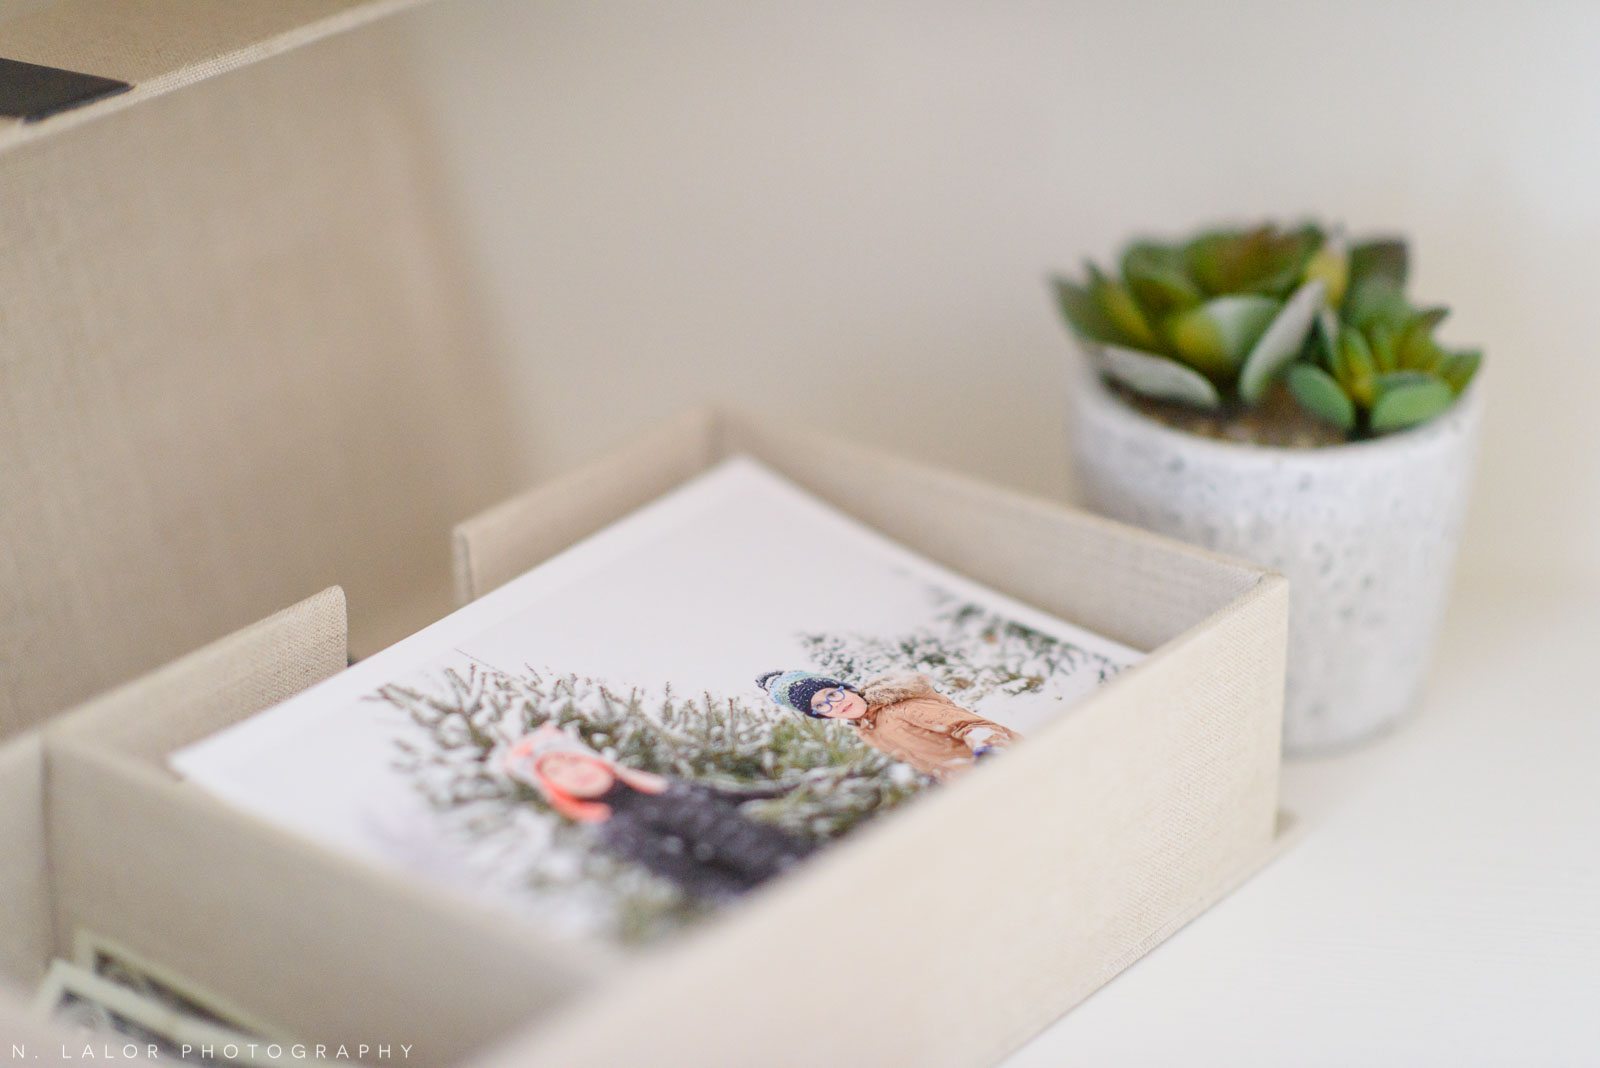 Image of a linen memory box full of childhood photos. Photo by N. Lalor Photography in Greenwich, Connecticut.